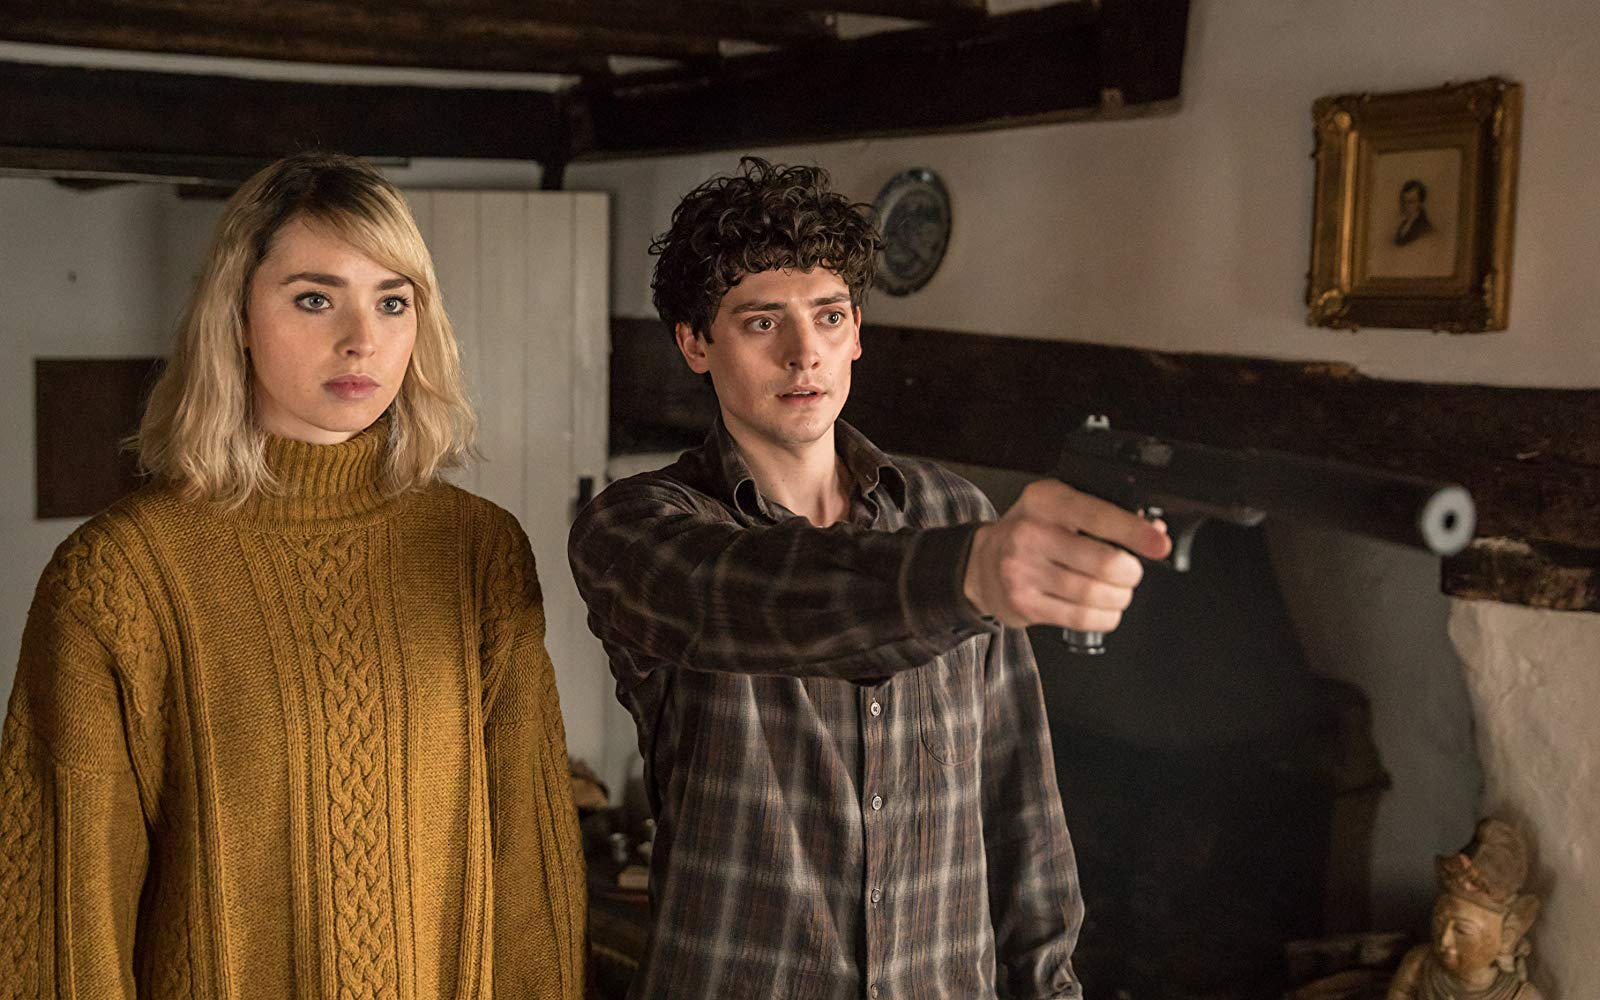 A still from the film with lead actors Freya Mavor and Aneurin Barnard.